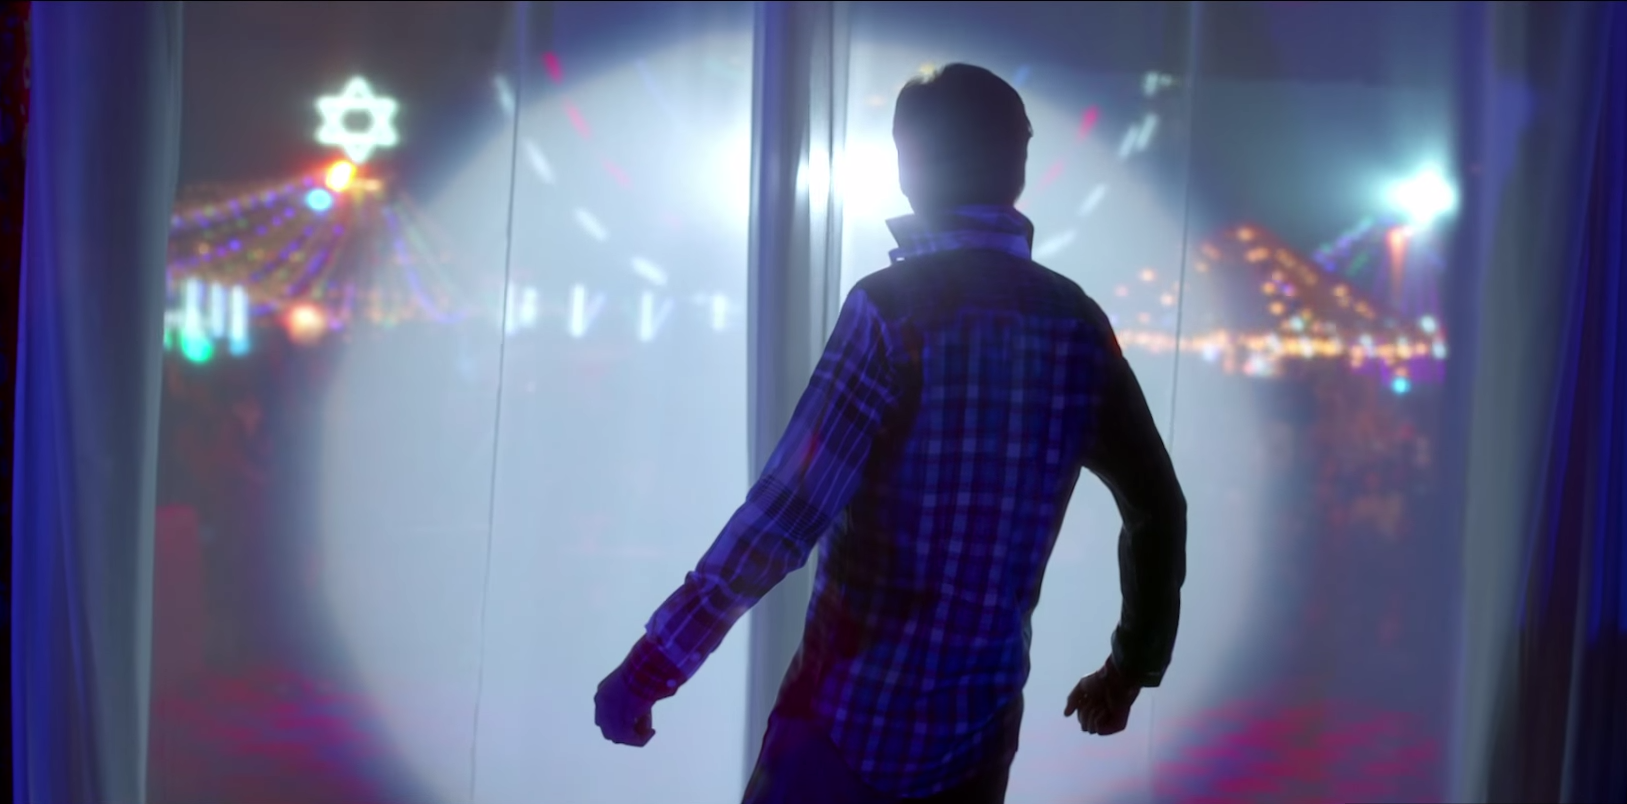 Watch : 'FAN' Movie Teaser Starring Shah Rukh Khan